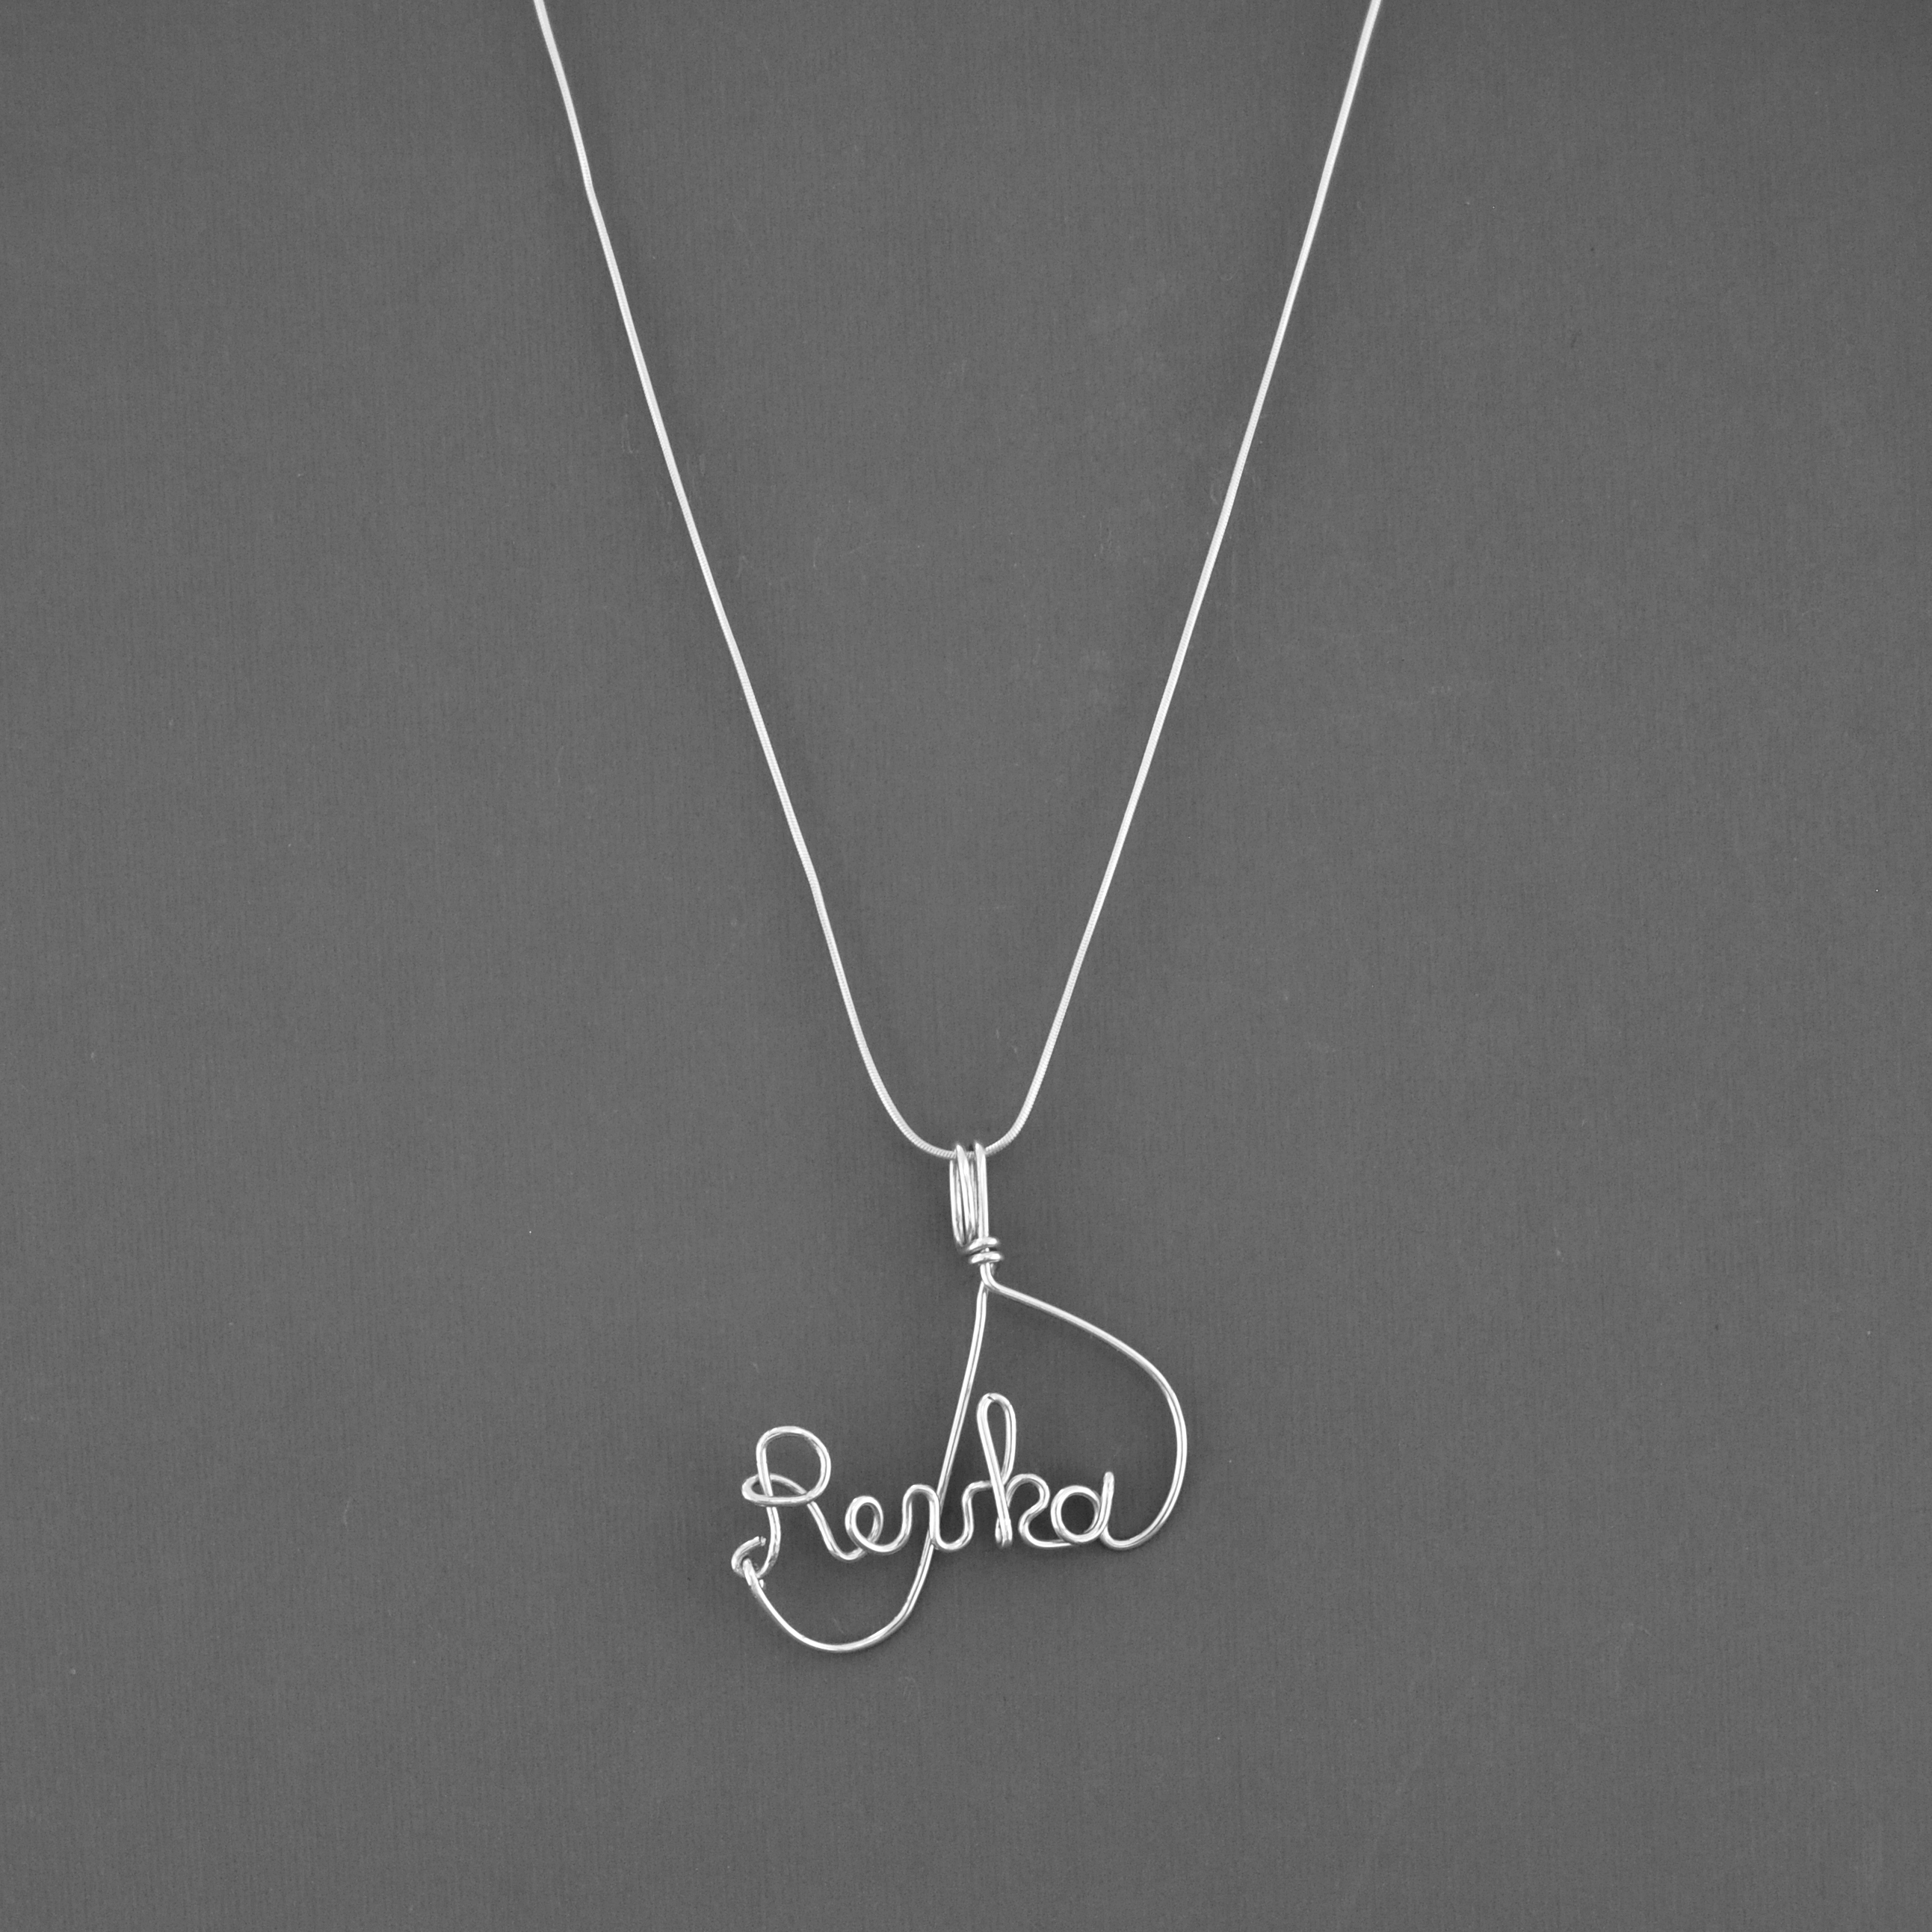 name shop dainty img initial custom necklace names covered necklaces diamondcoveredname jewellery diamond initials